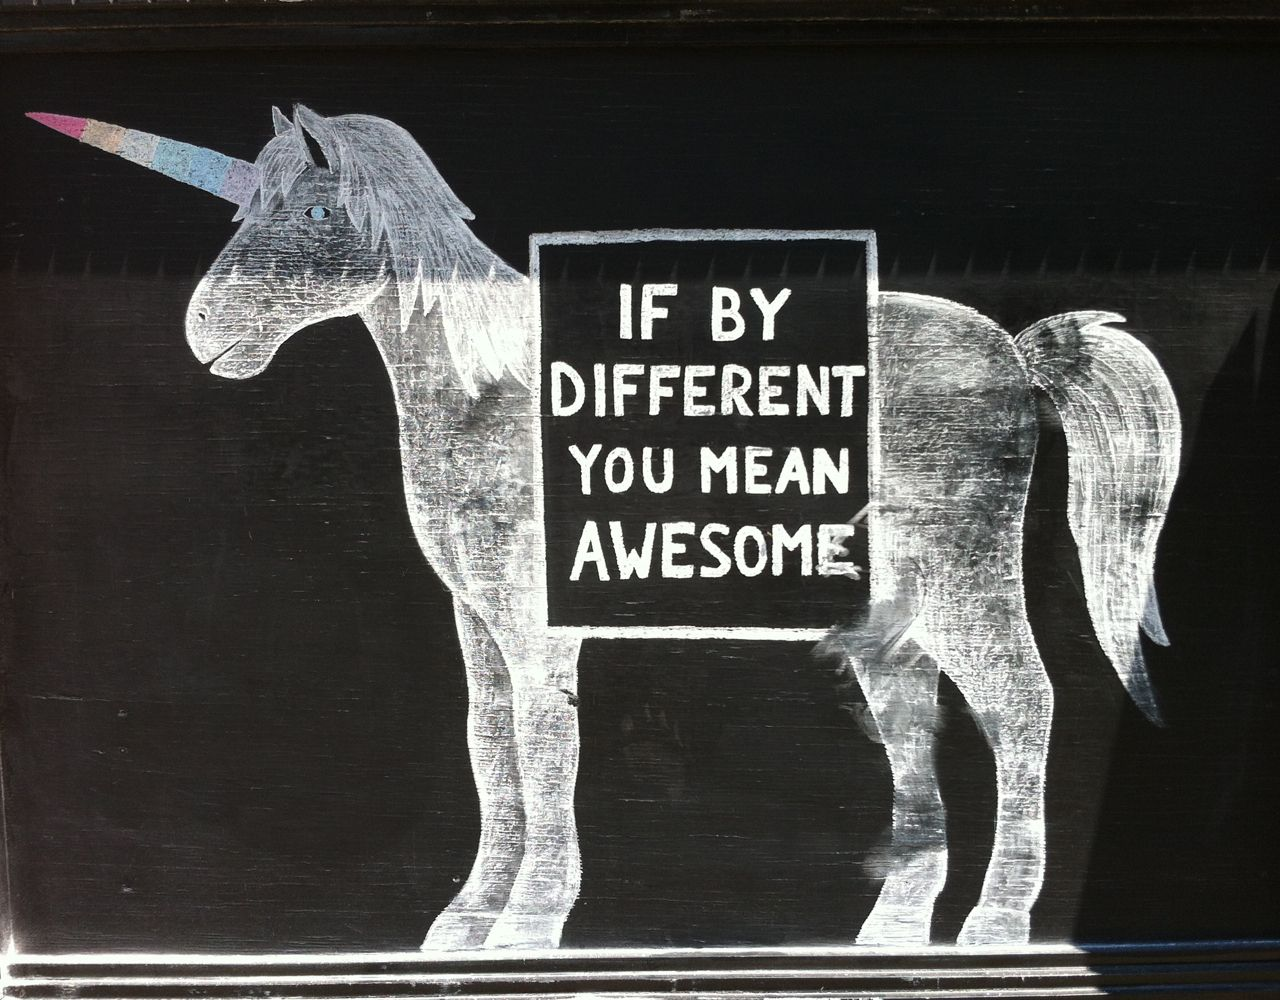 If by different you mean AWESOME